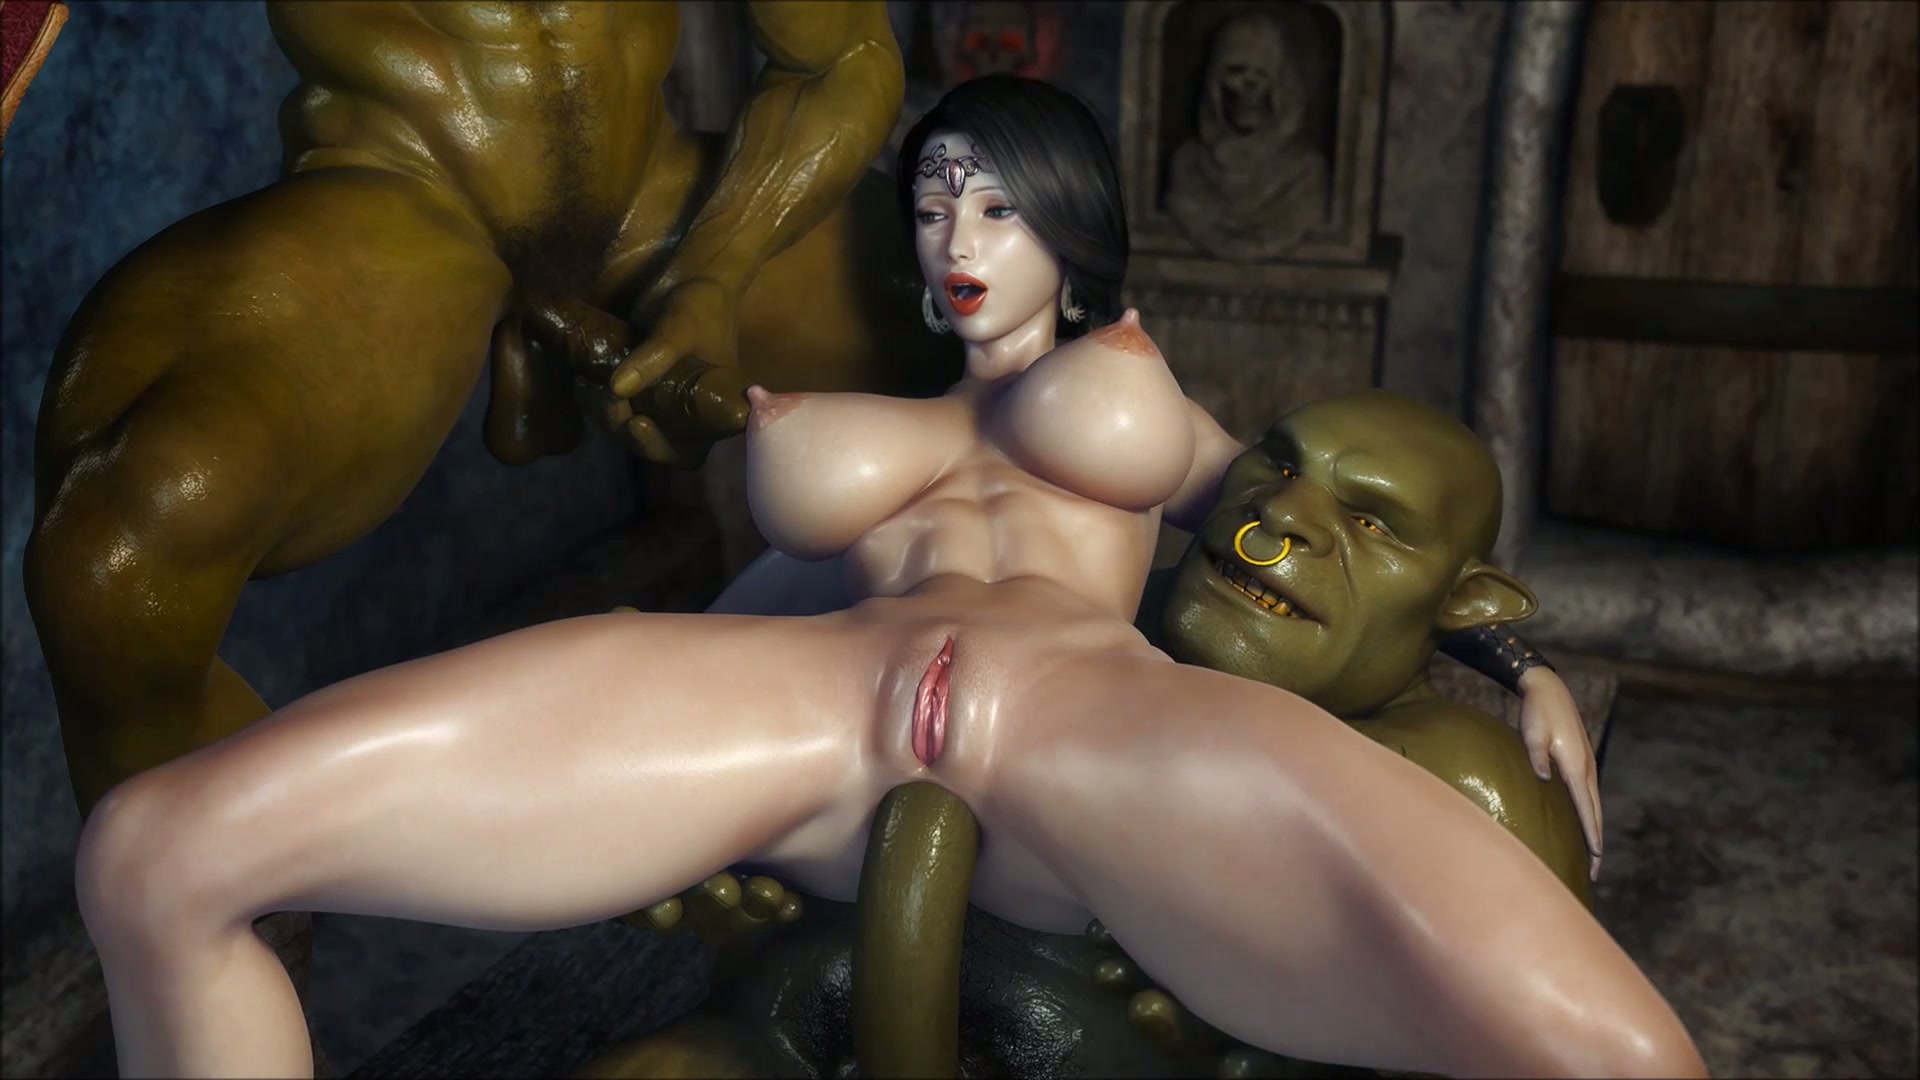 Sexy orc girl pics exposed scene